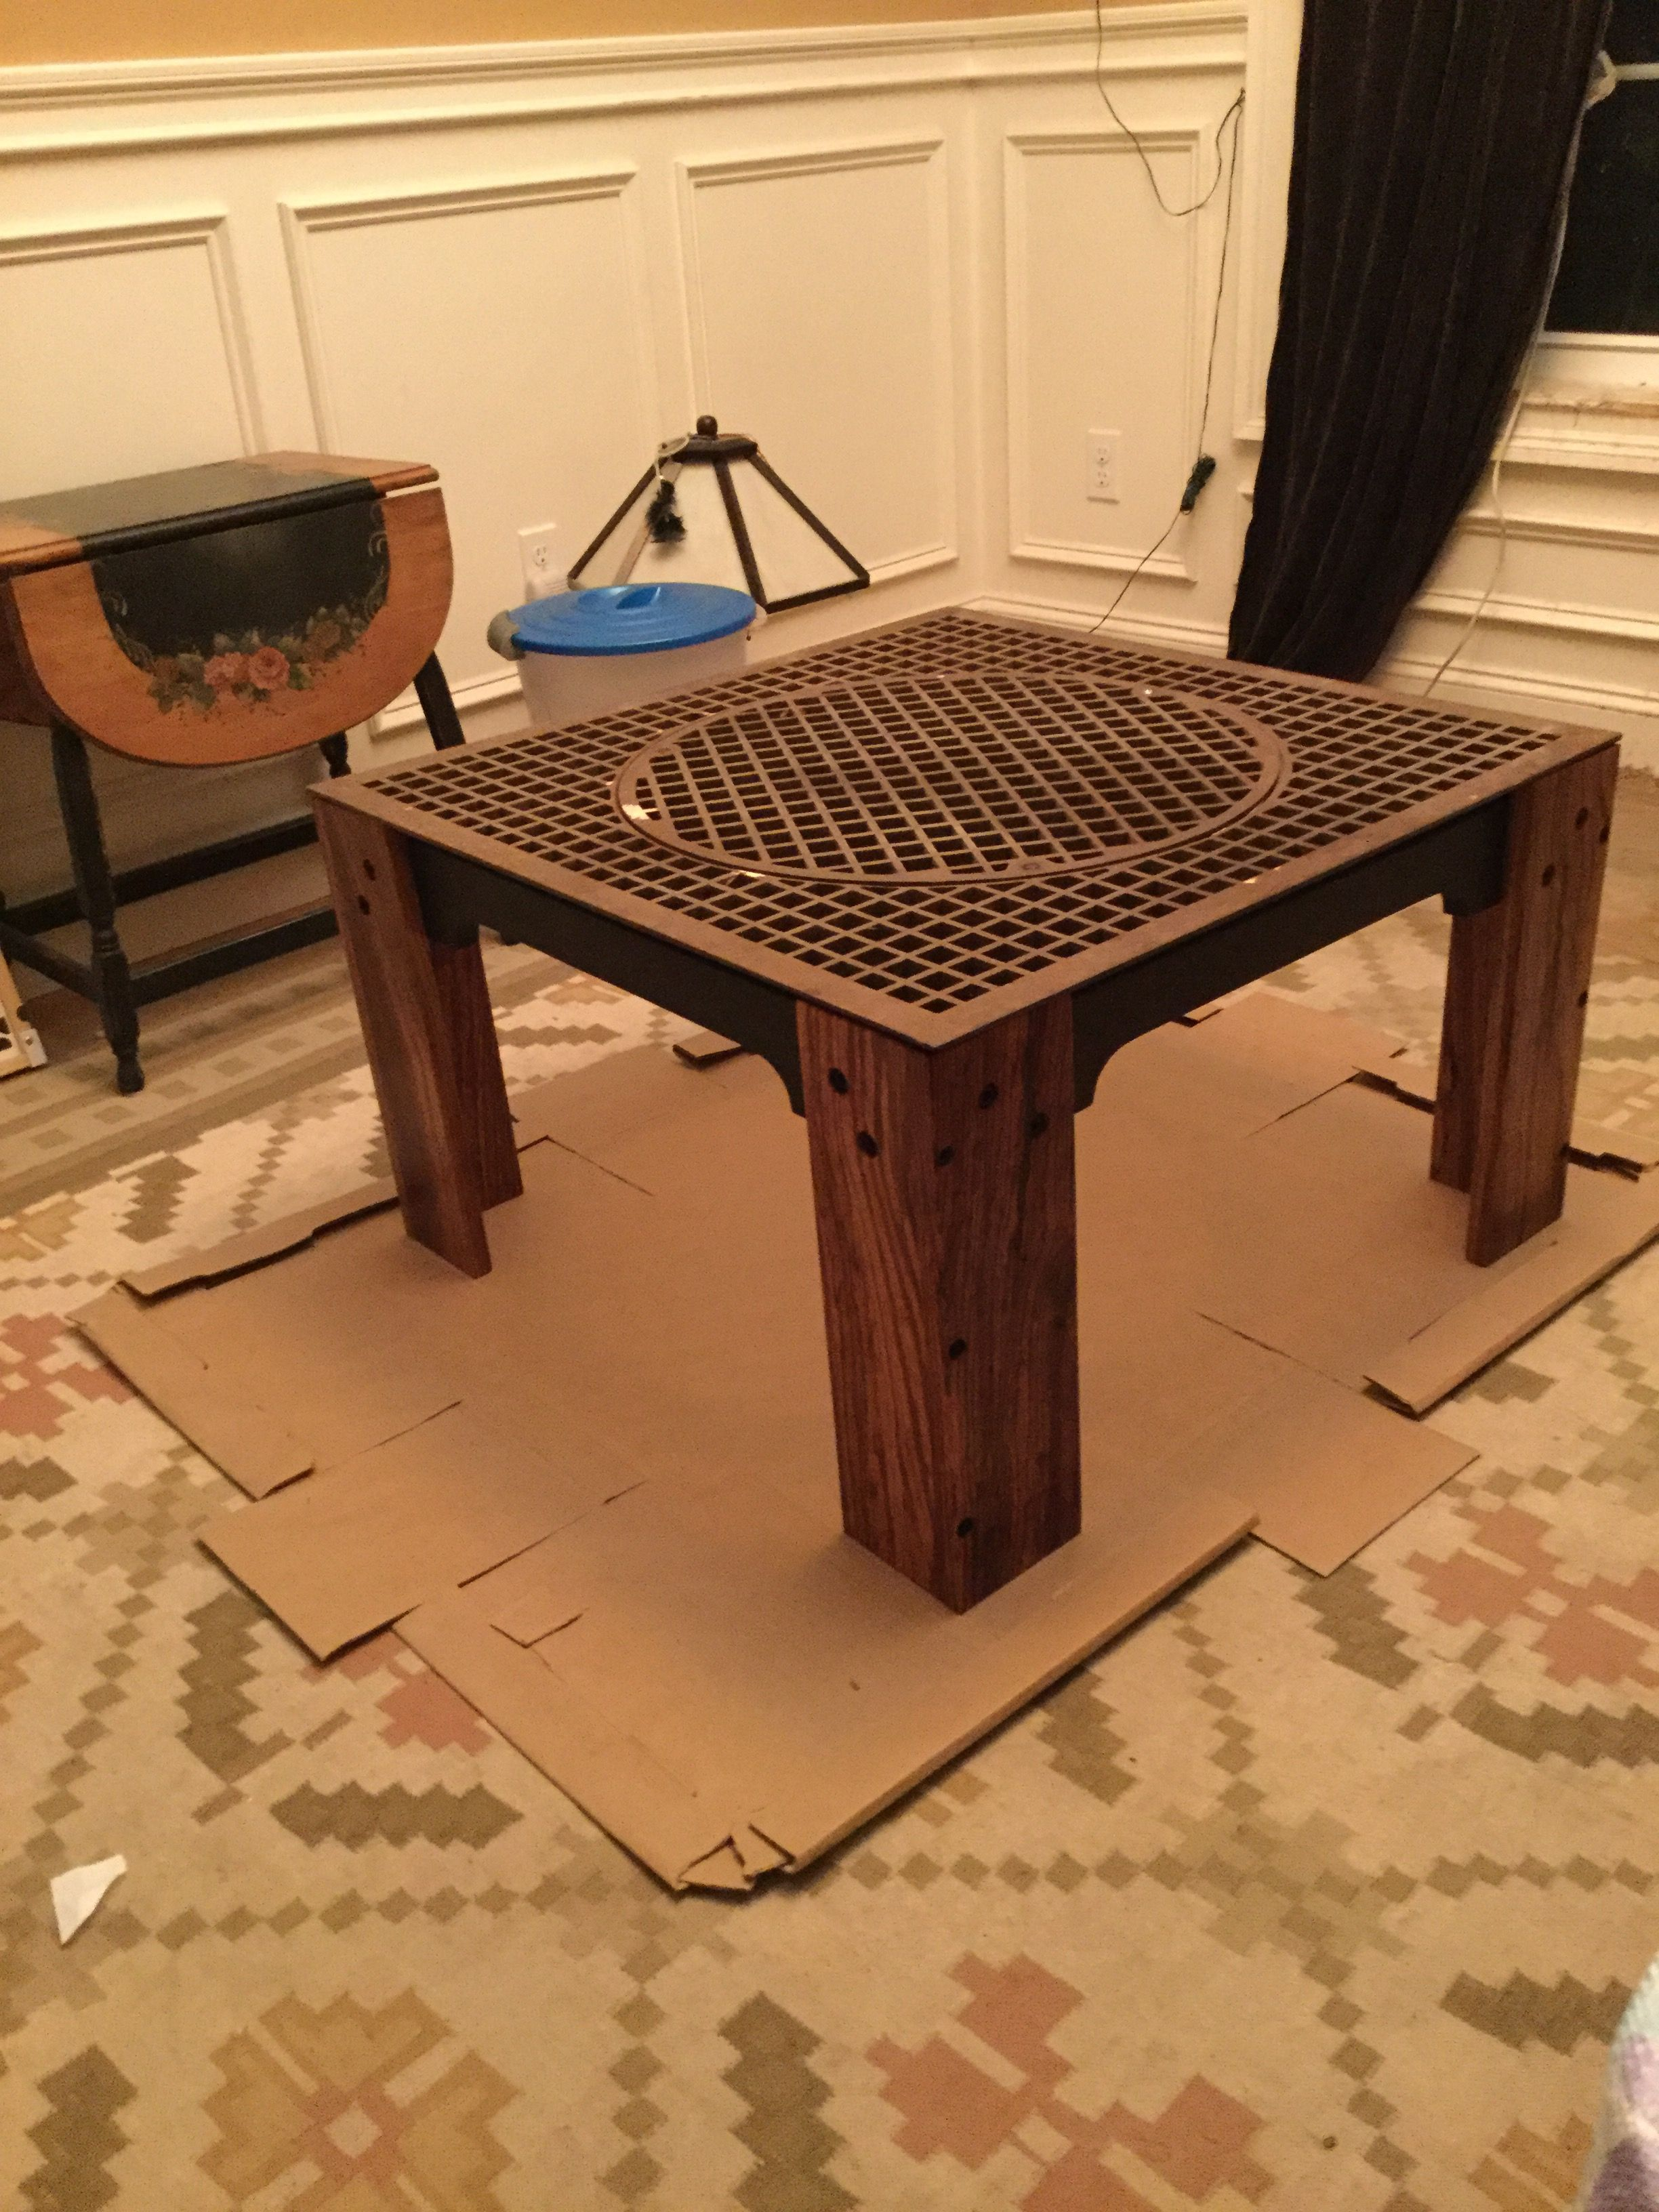 Almost finished new coffee table for a client iron grate with